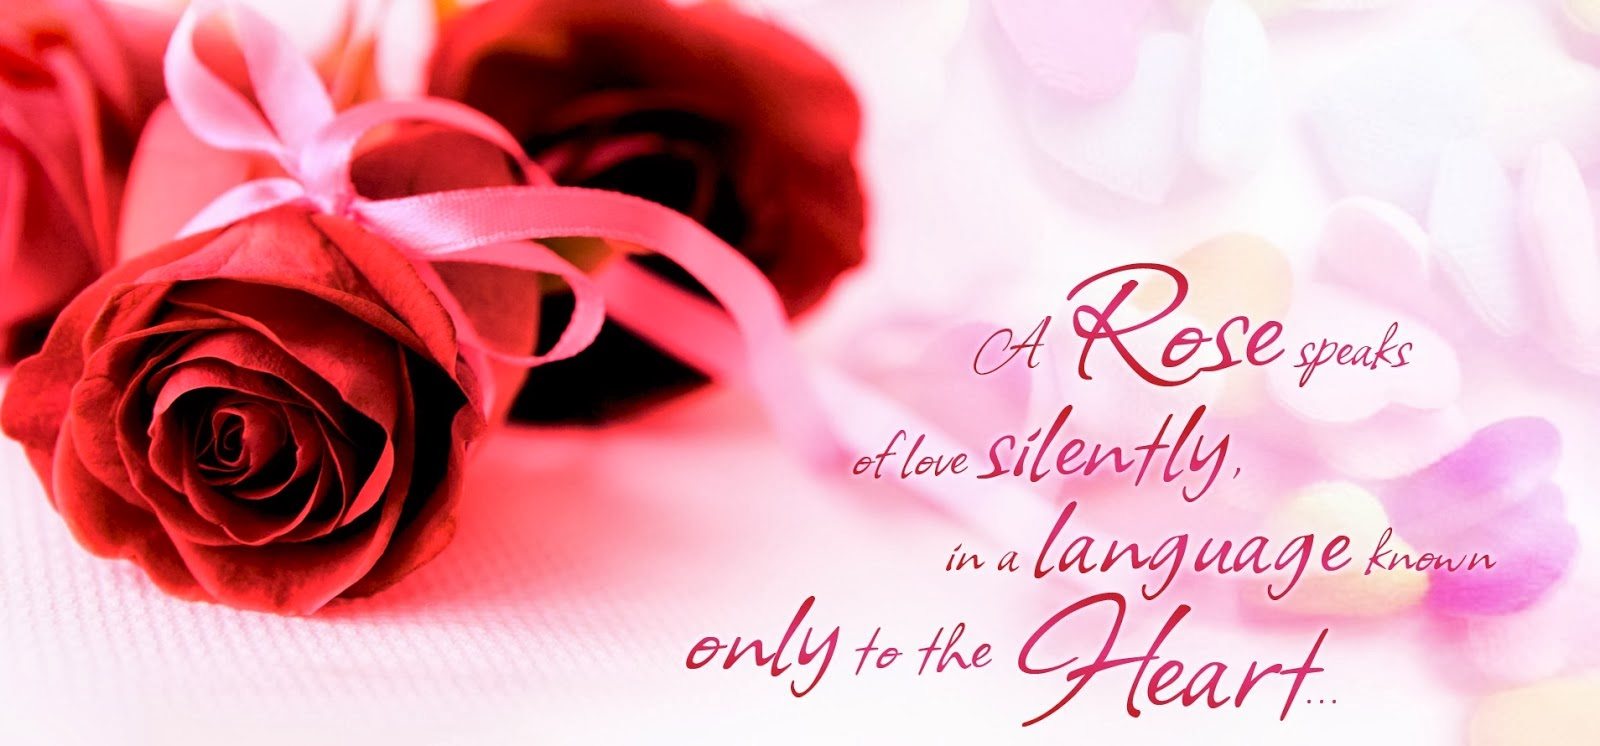 happy rose day 2014 images with quotes sayings